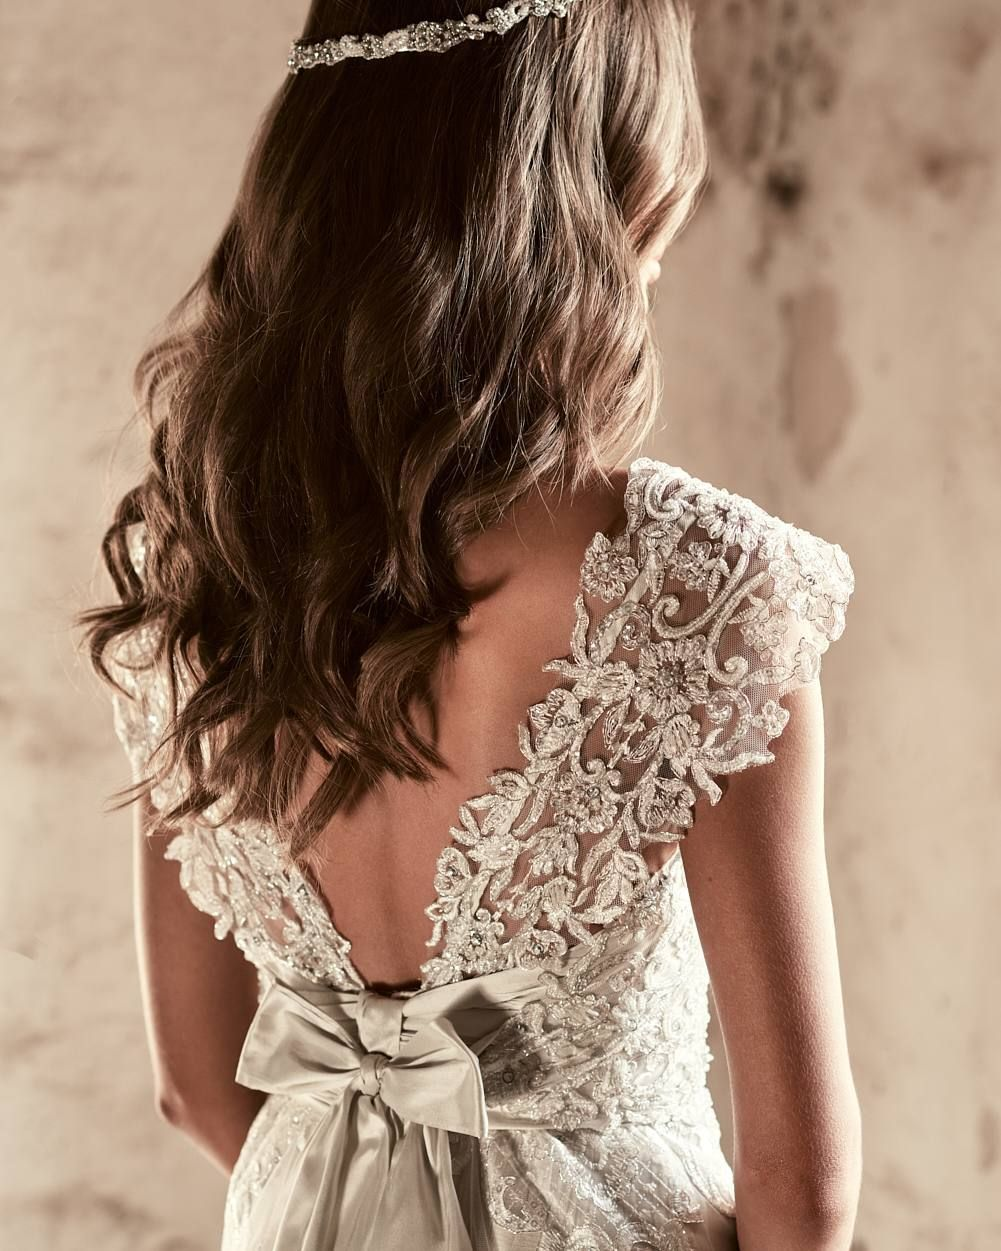 Champagne colored wedding dress  Champagne colored wedding dress with lace and beading so romantic